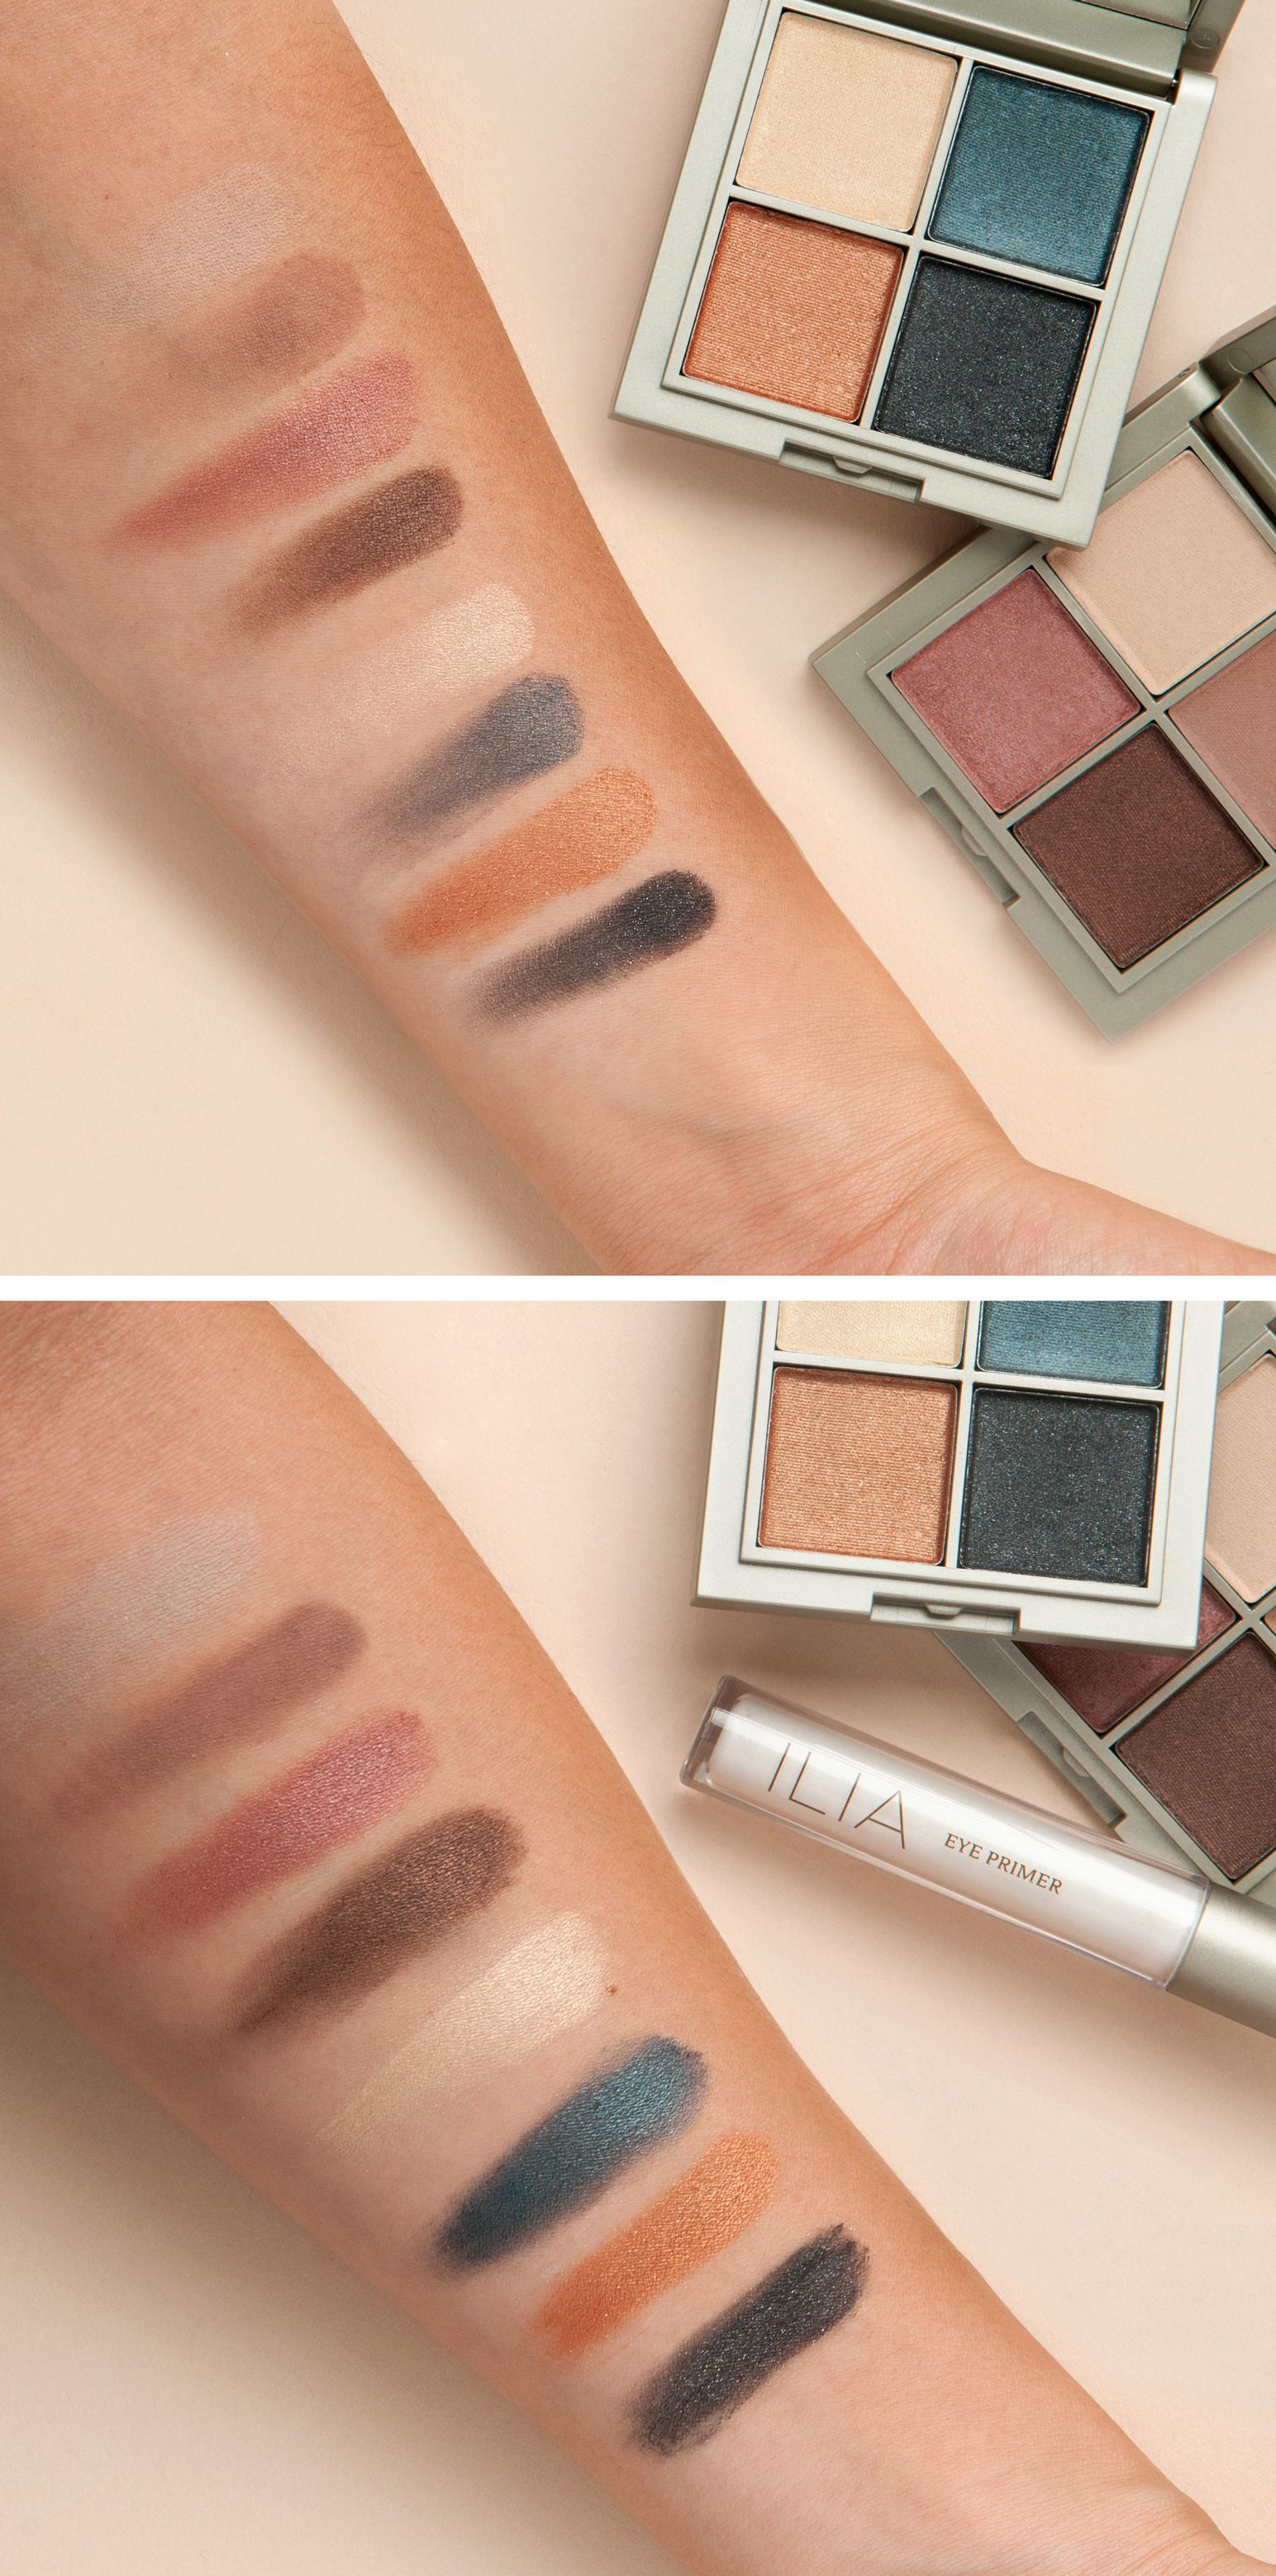 Prima and Luna swatched — colors that build and last all